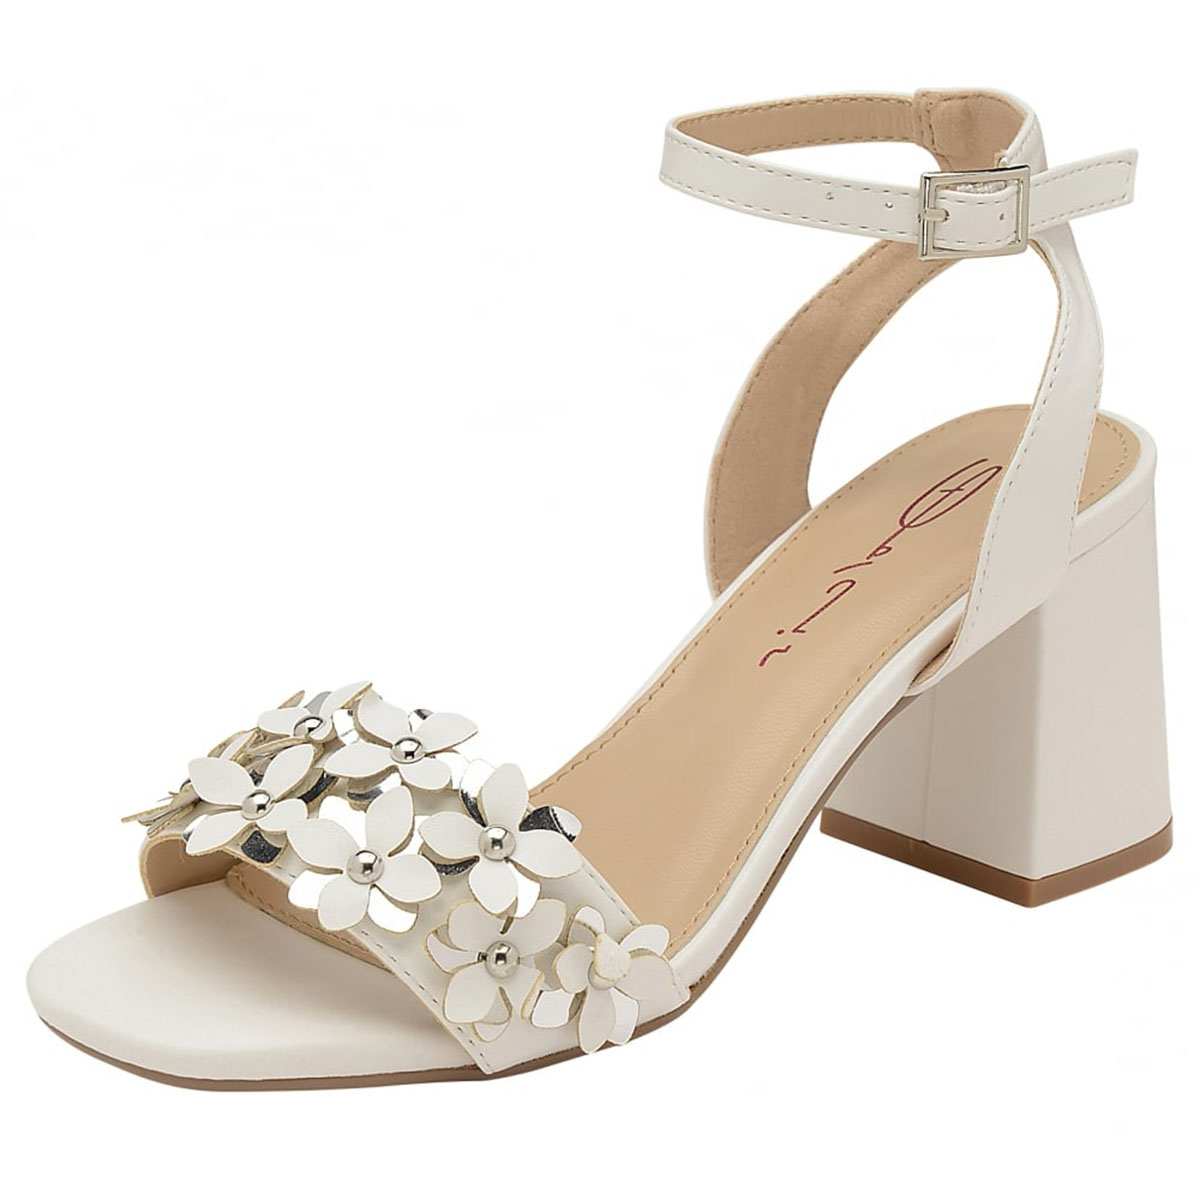 8728339f1d22 LADIES DOLCIS NIAMH WHITE BLOCK HEEL ANKLE PEEP-TOE SANDALS STRAPPY SHOES  UK 3-8 Buy Online